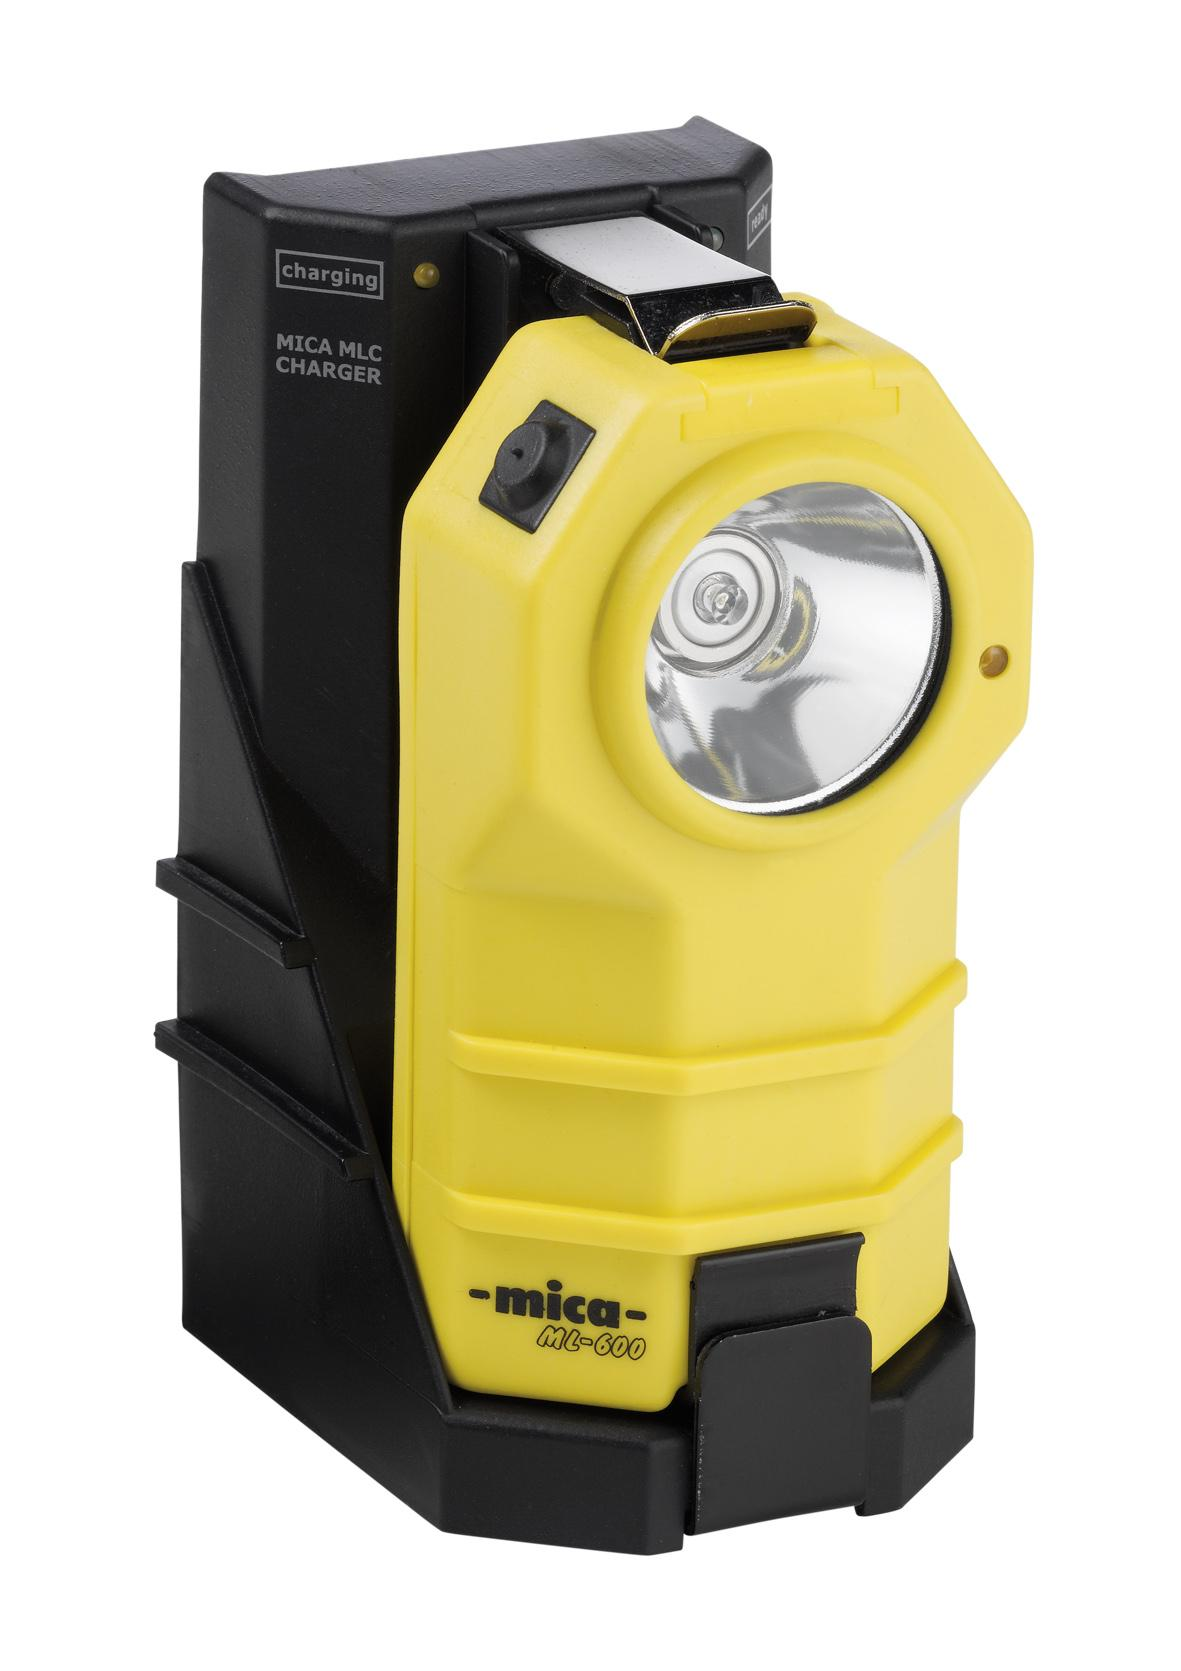 MICA MLC Fast charger and MICA ML-600 handlamp